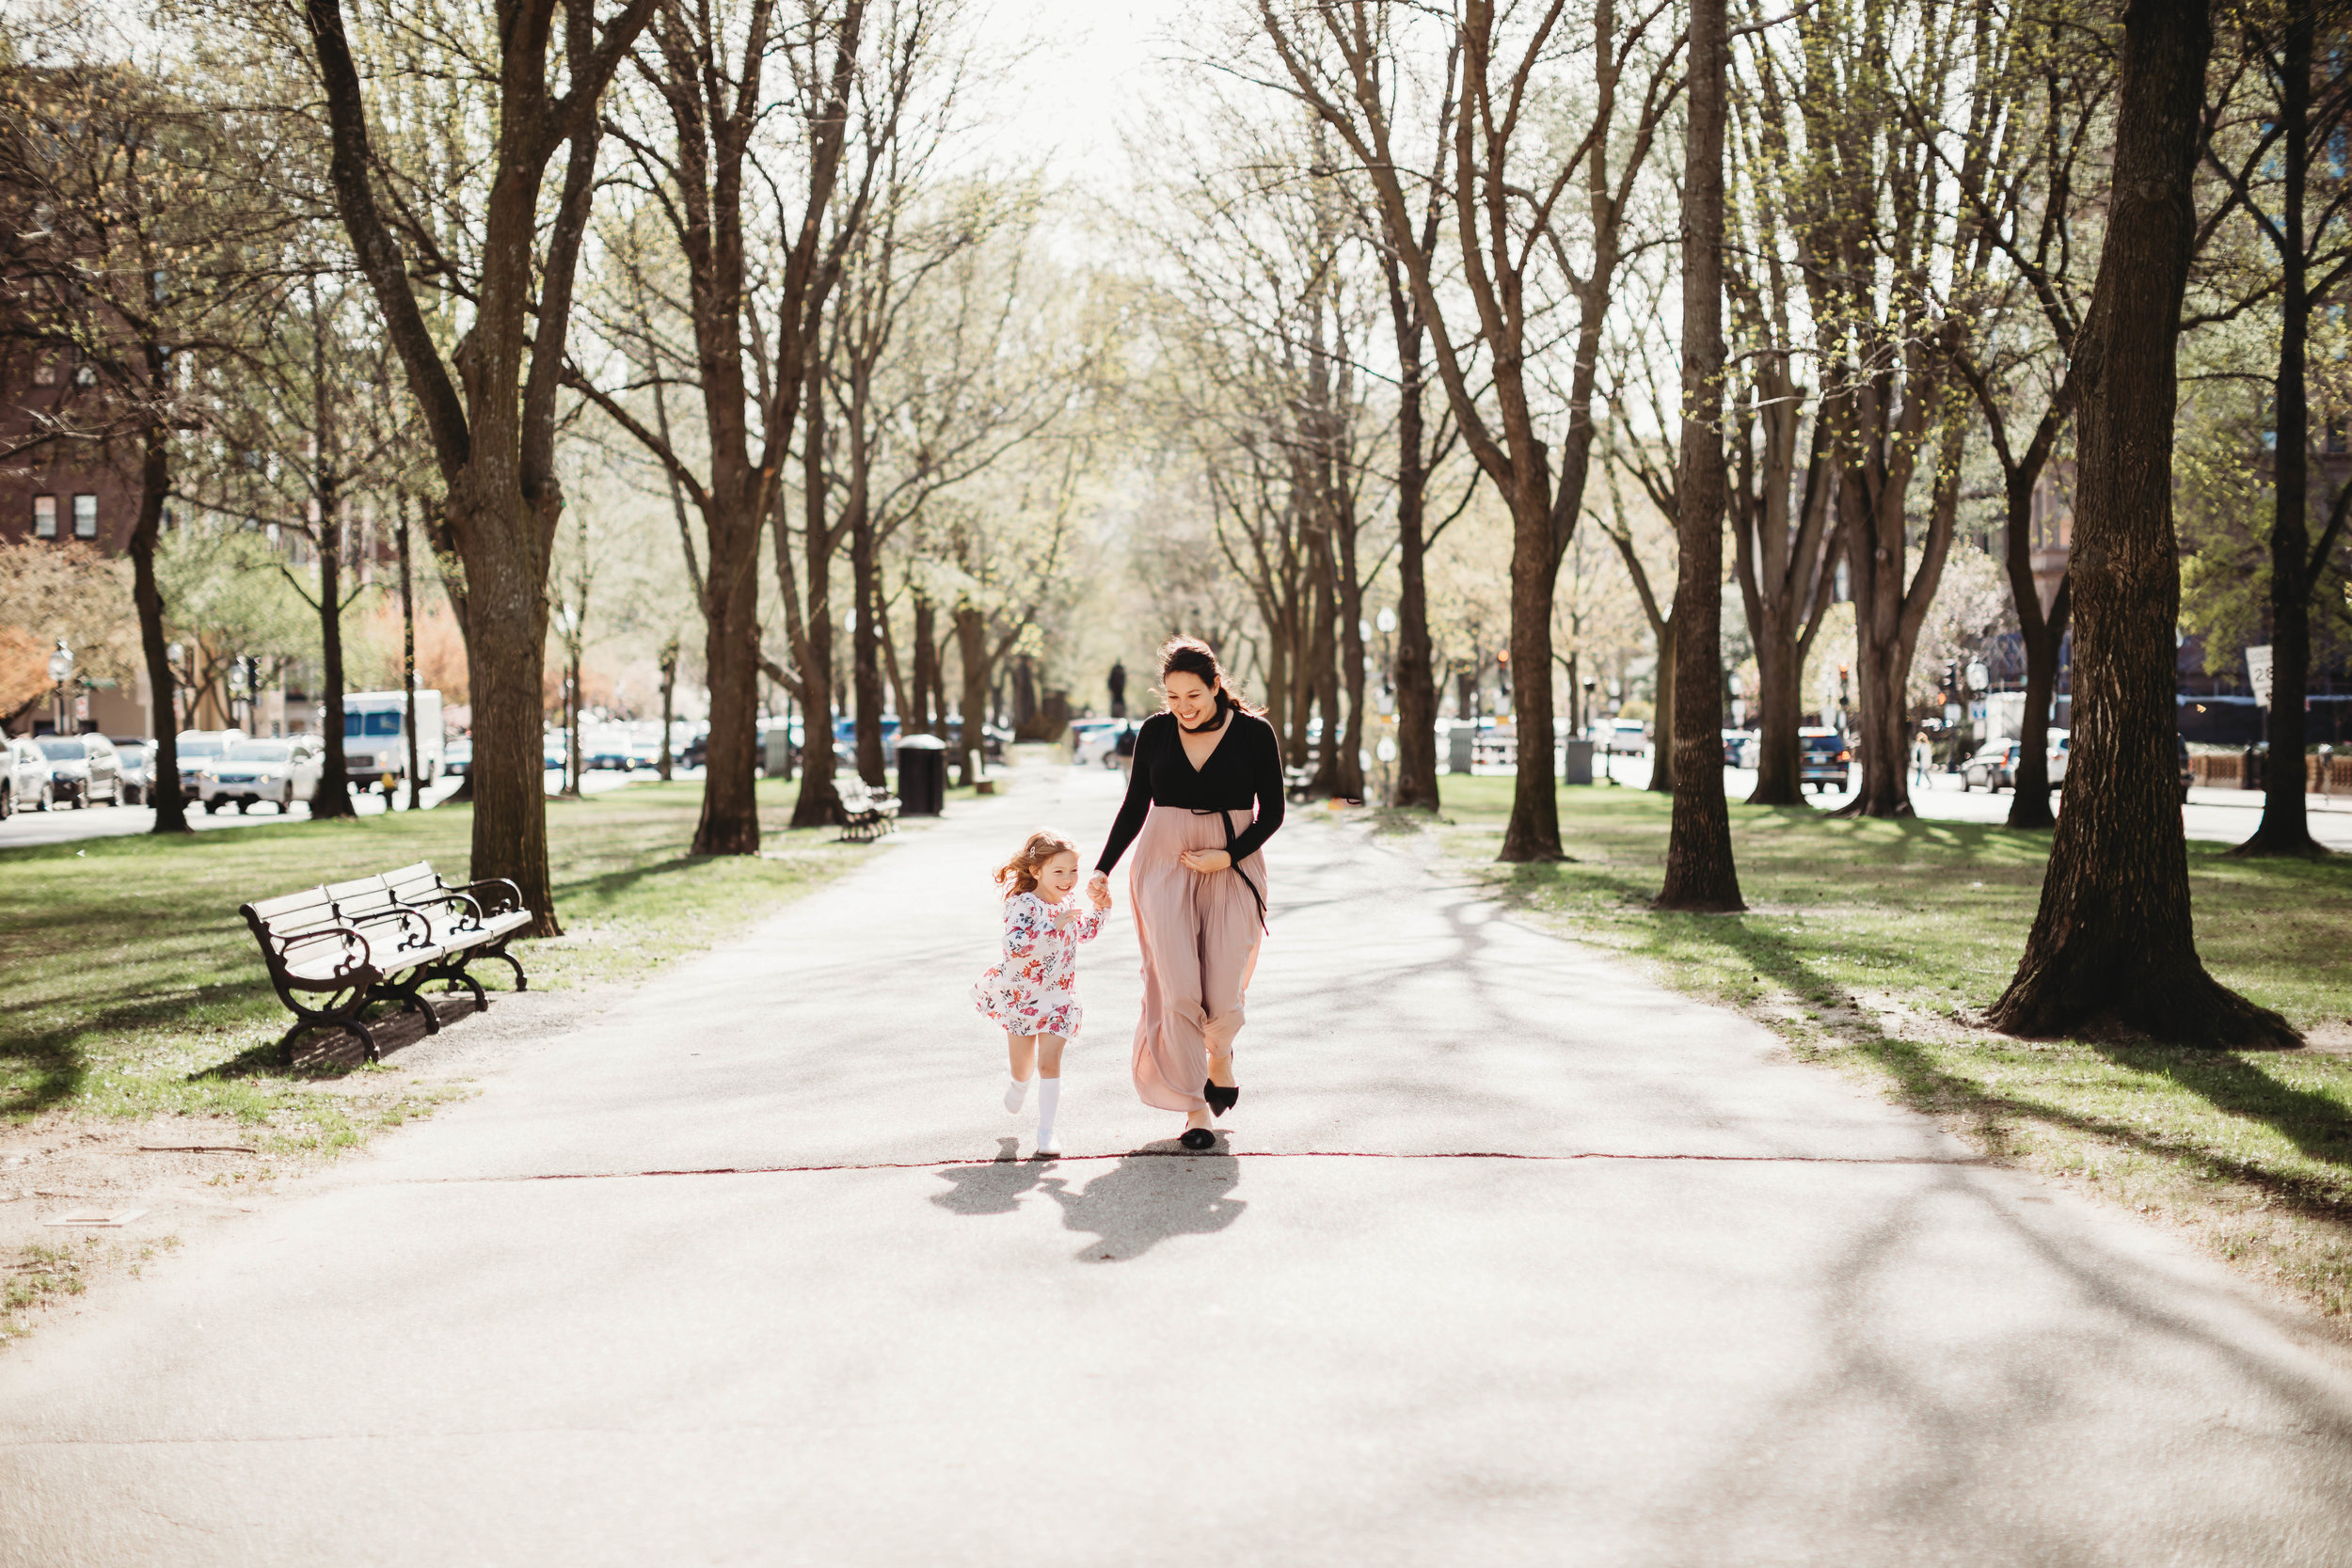 Boston family photographer. New England maternity portraits. Springtime in the Back Bay with an old friend.